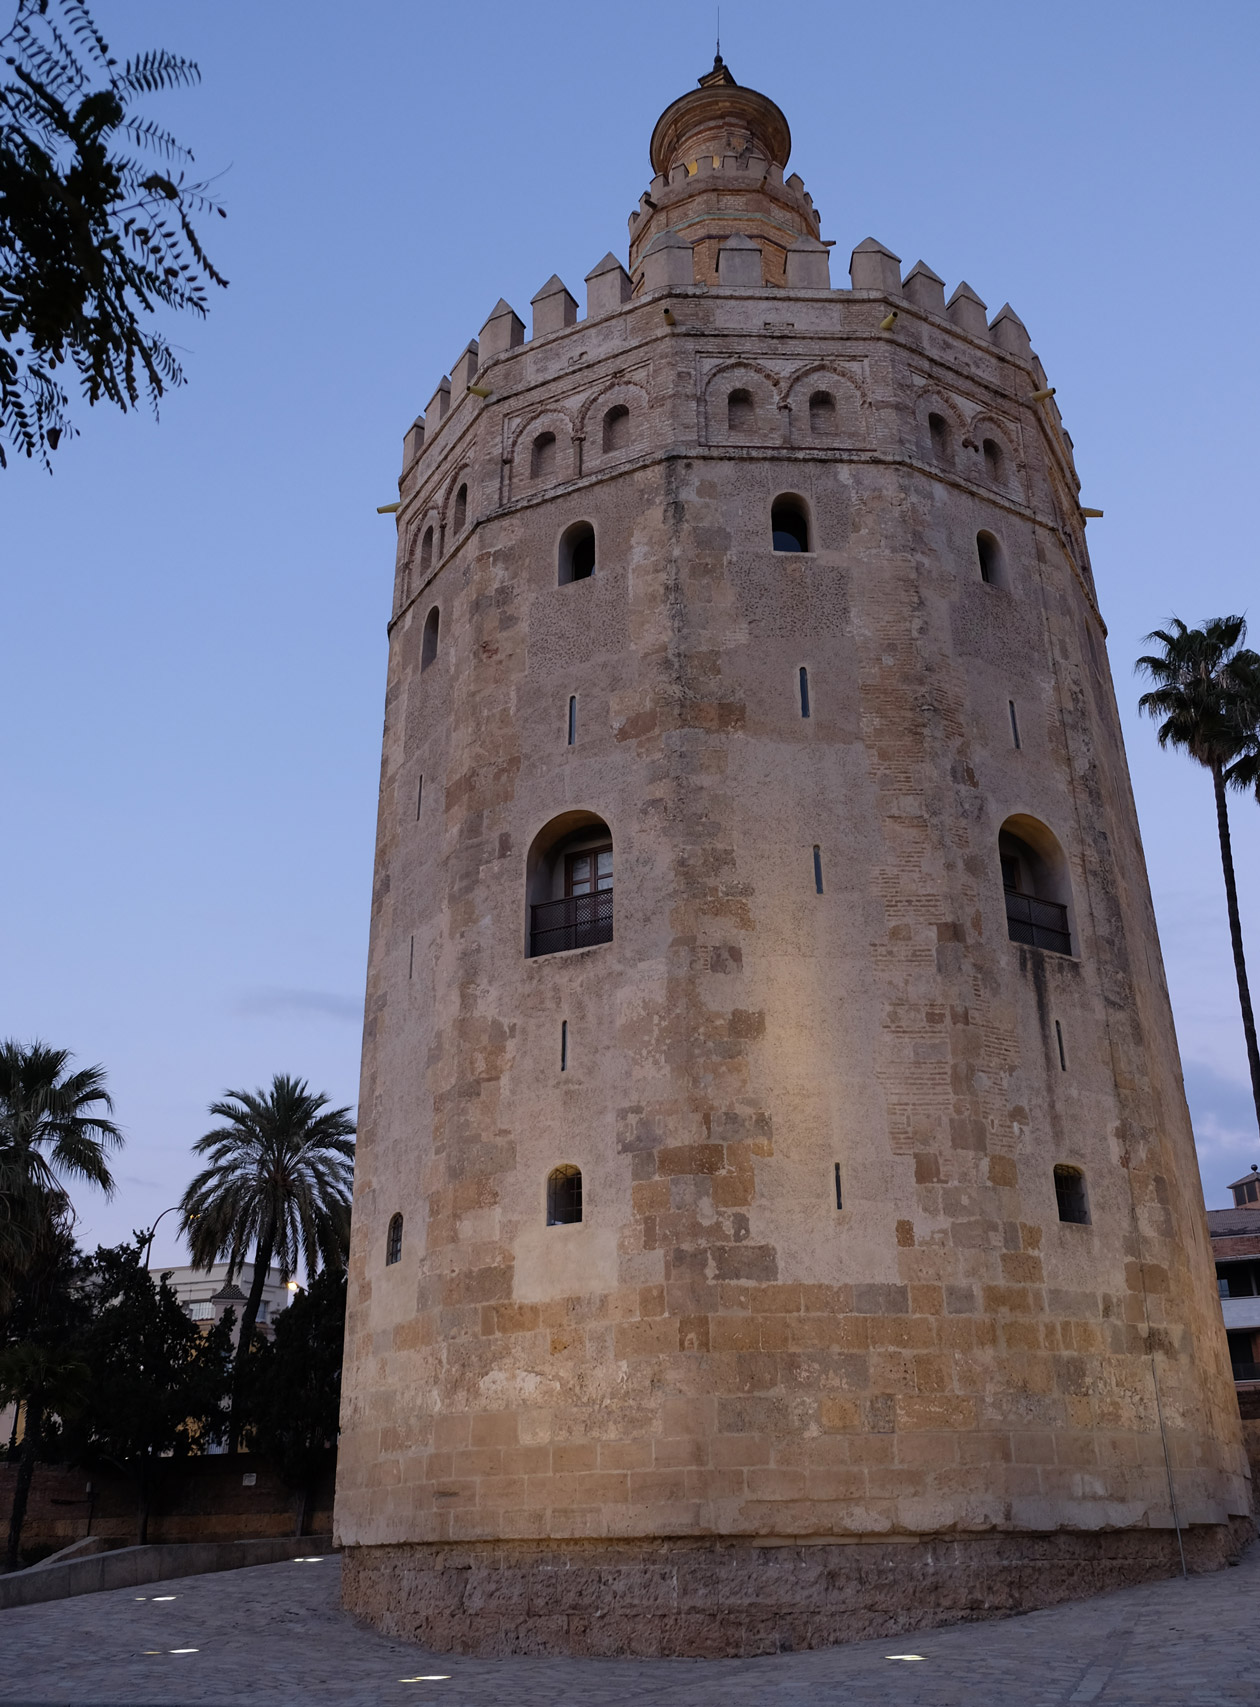 The Torre del Oro, on the banks of the Guadalquivir river